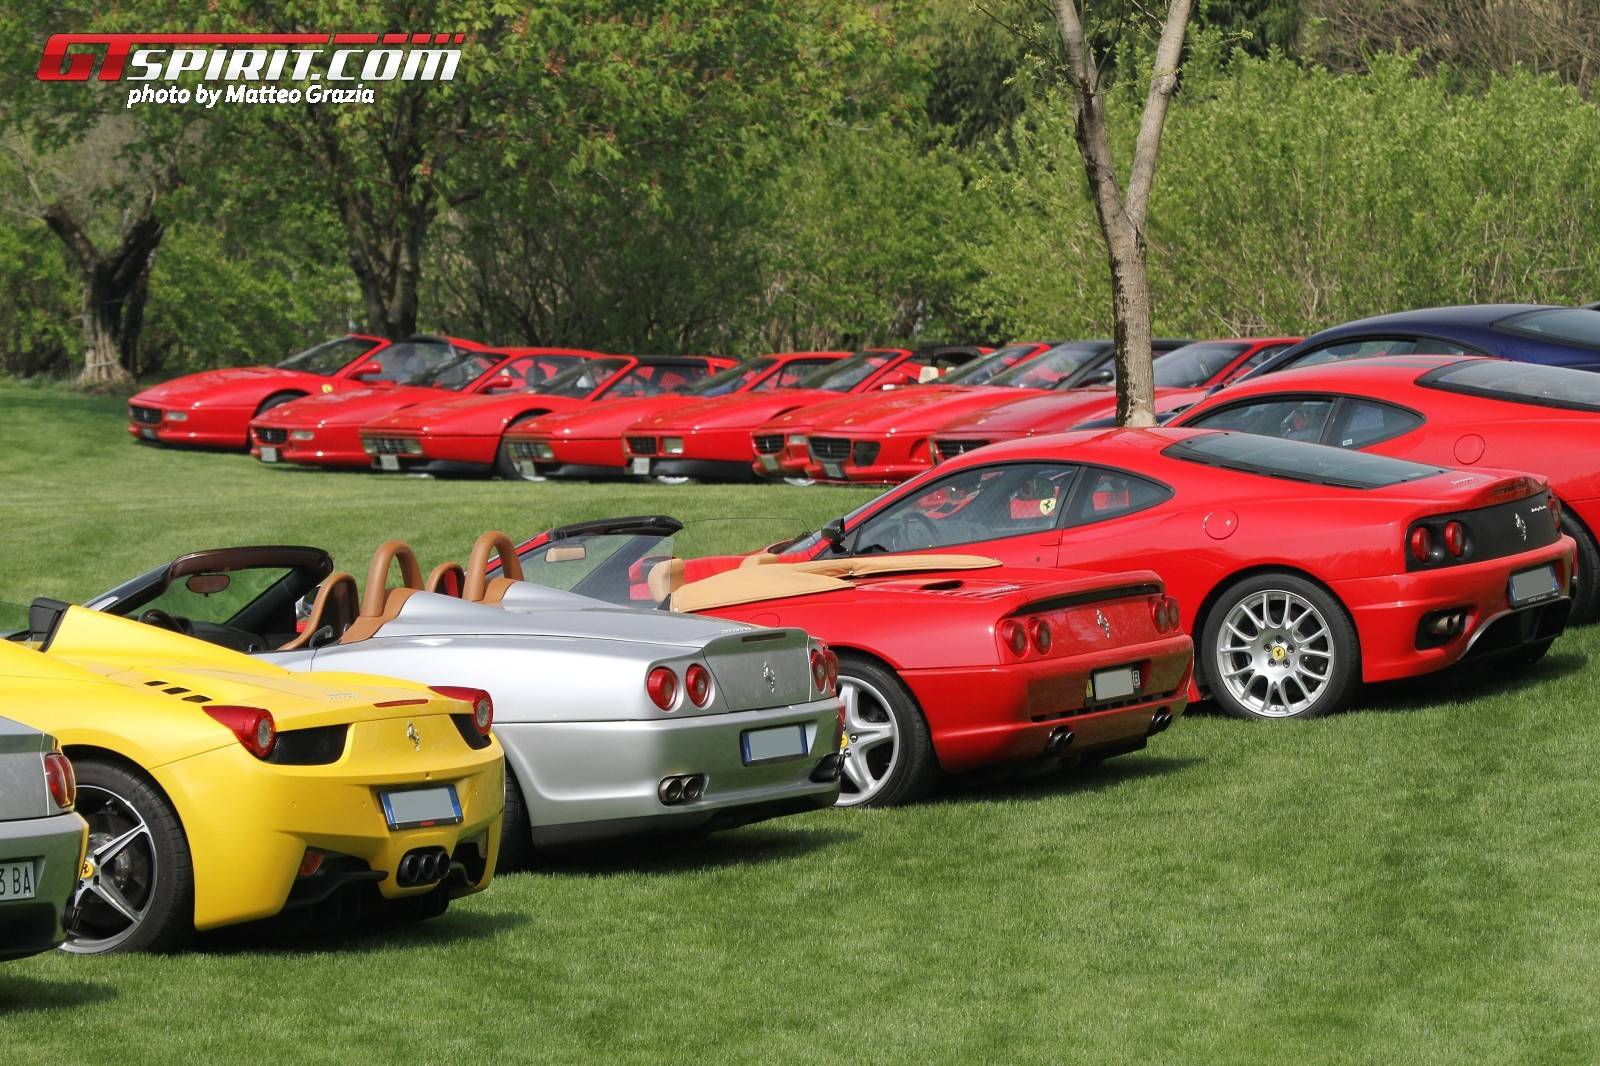 Italy Cars: 2015 Cars And Coffee Italy Gathers World's Best Supercars